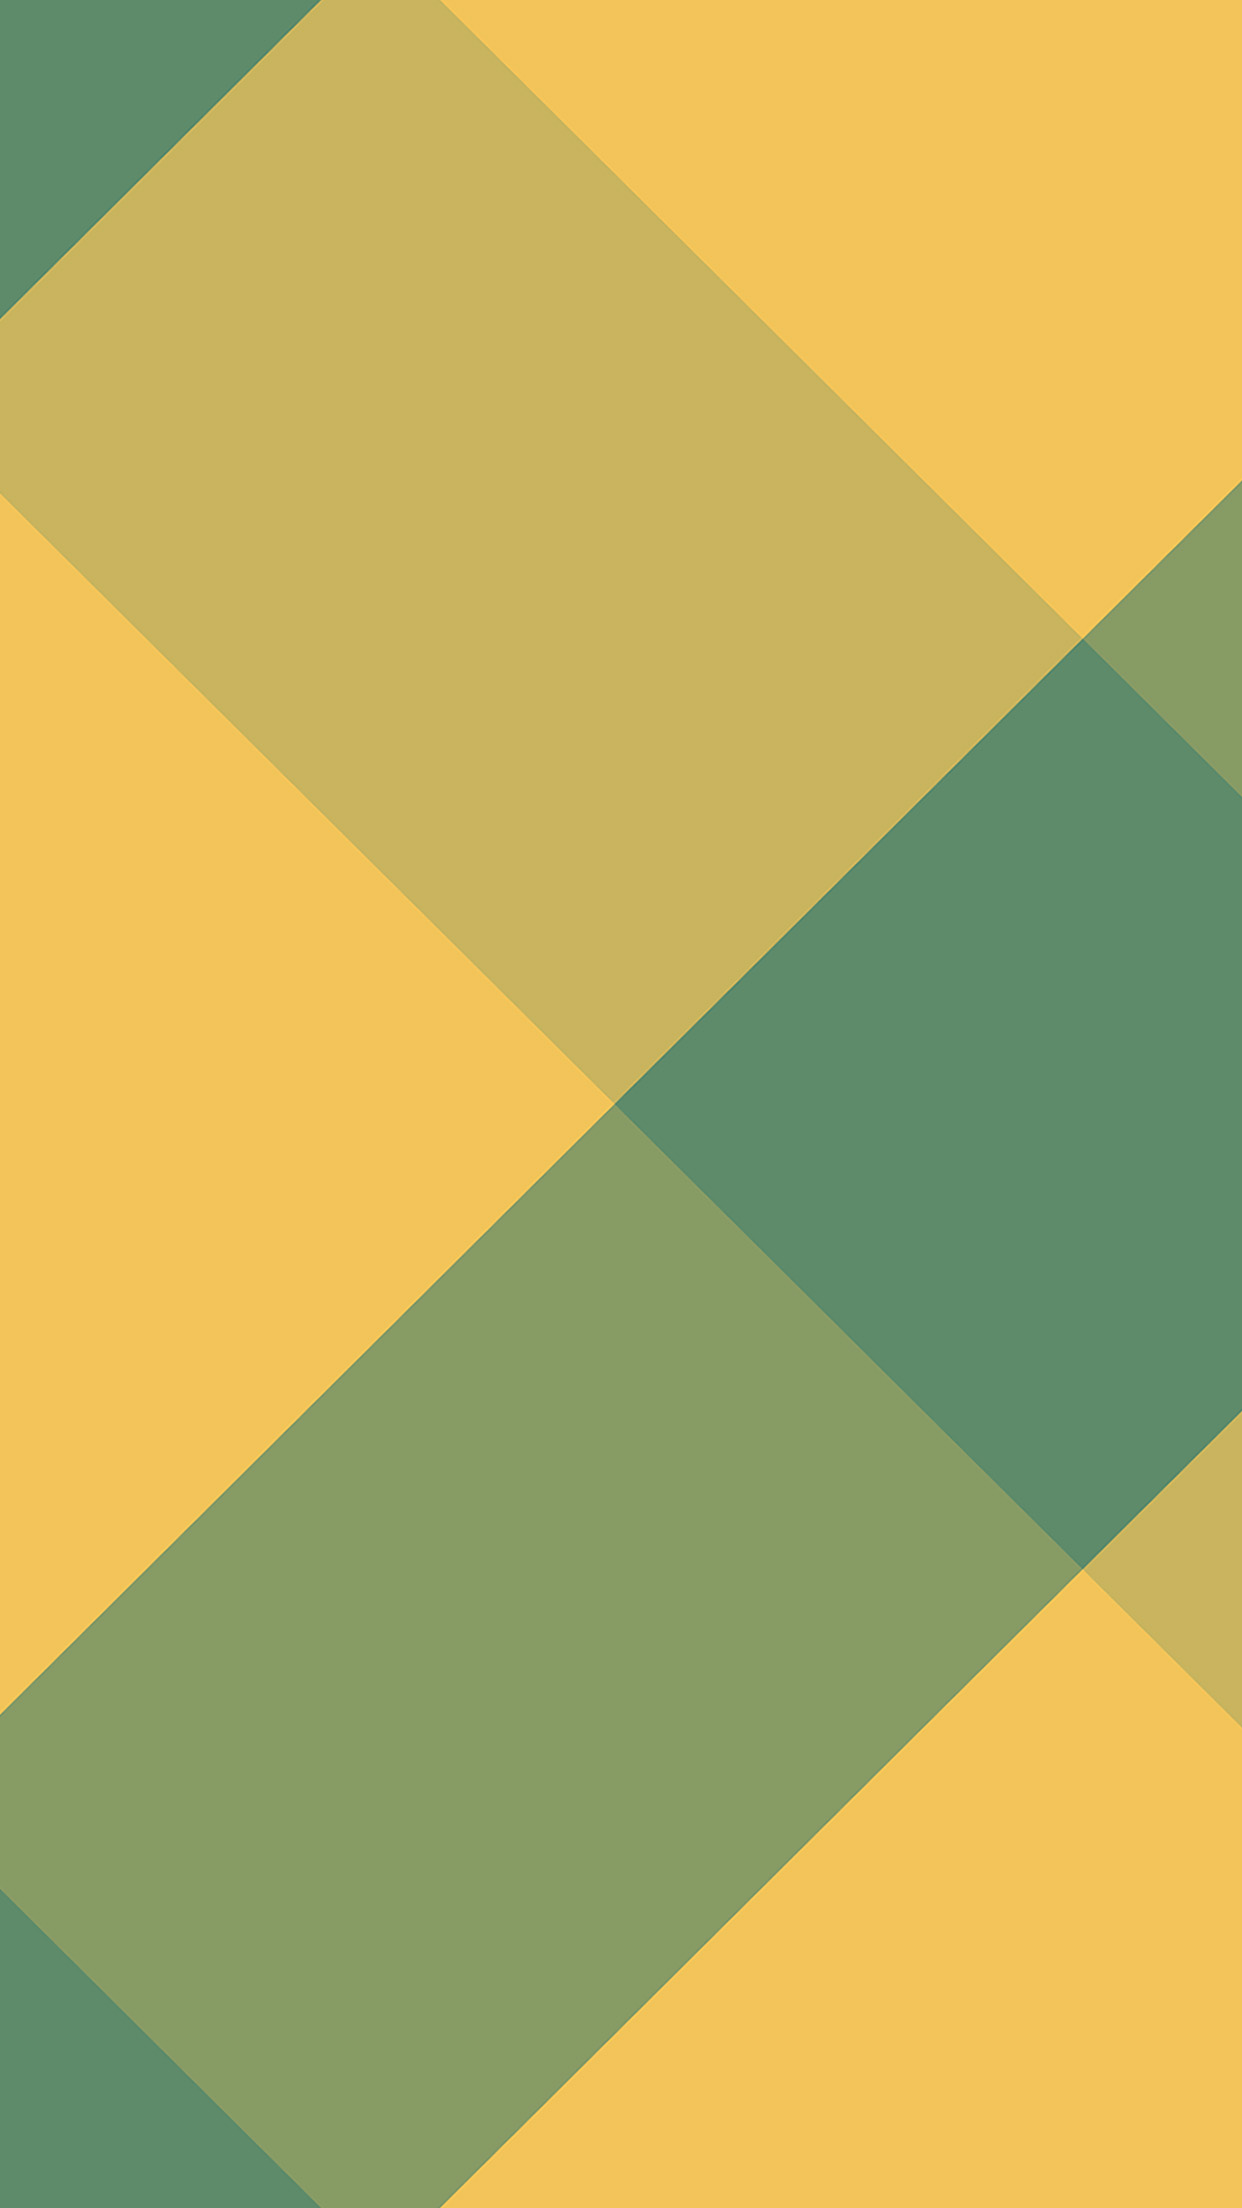 Lines Green Yellow Rectangle Abstract Pattern Android